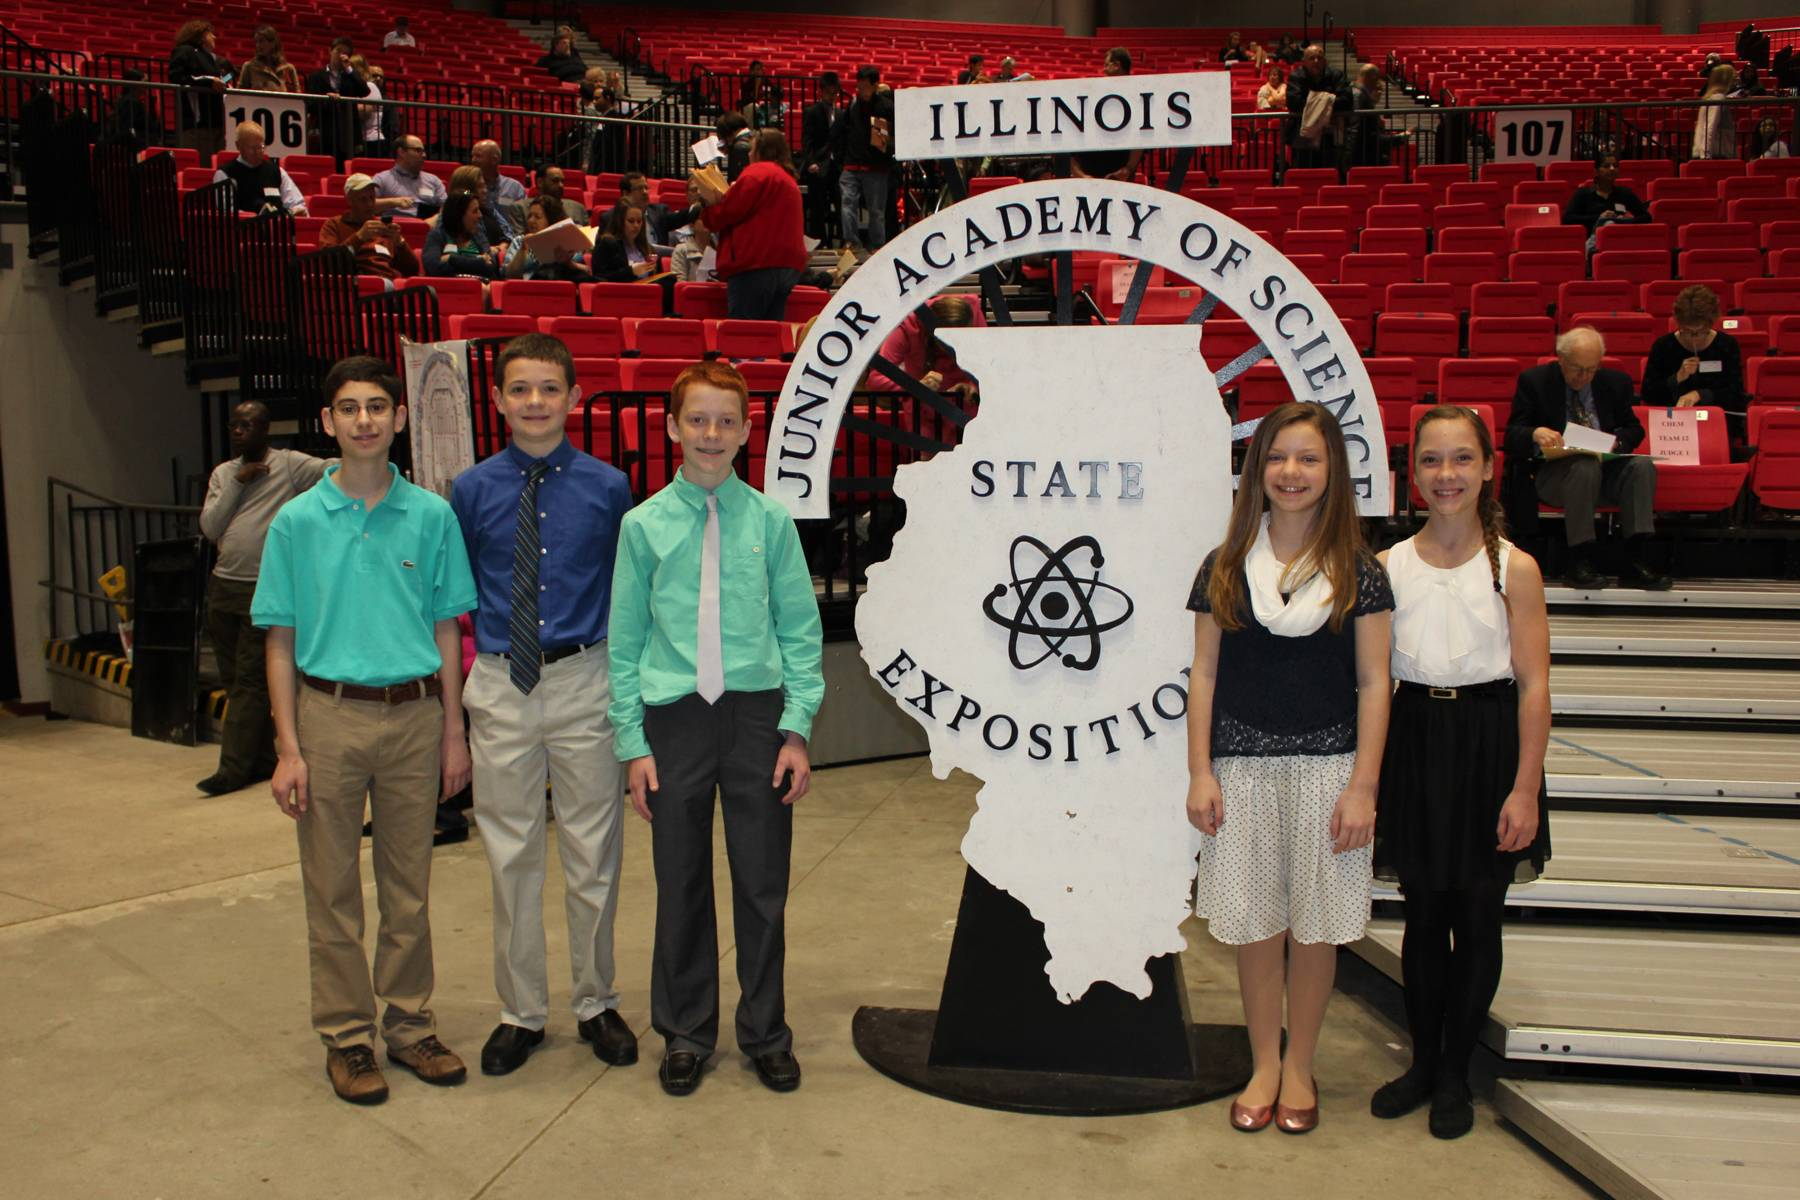 Saint Mary Students win Gold & Silver L-R George Yacu (Wheeling), Luke Wenzel (Buffalo Grove), Sean Seidl (Buffalo Grove), Ally Schwabe(Arlington Heights), Melanie Zimmerman(Vernon Hills), Lisa Schwabe, Saint Mary Public Relations